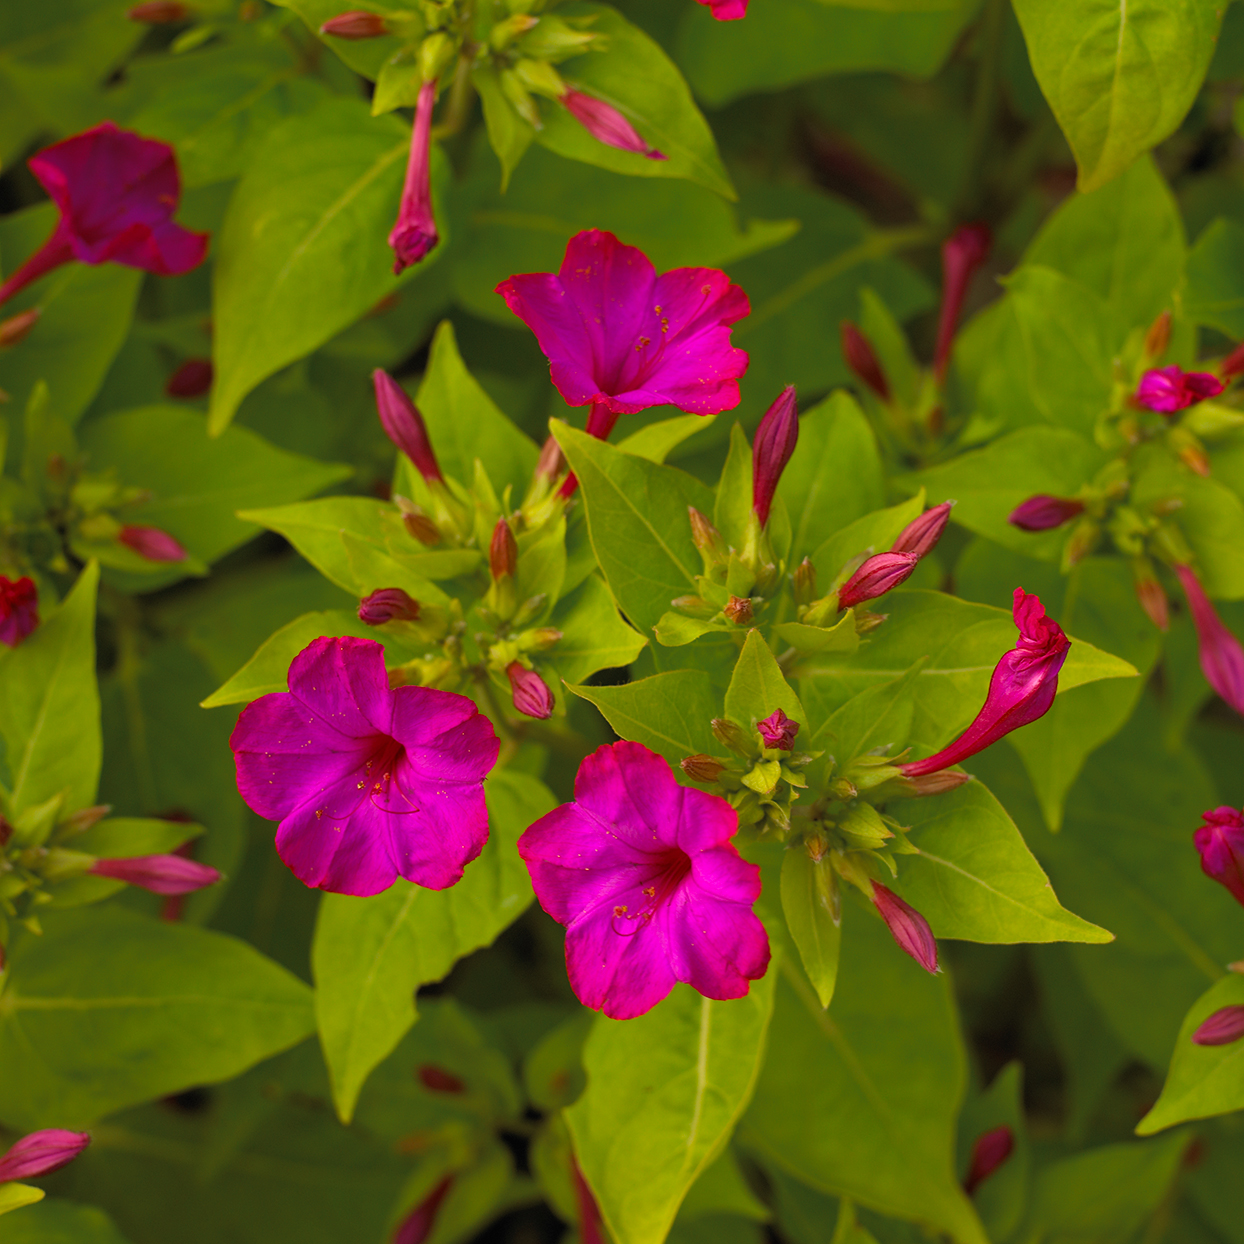 four o clock pink flowers blooming in garden